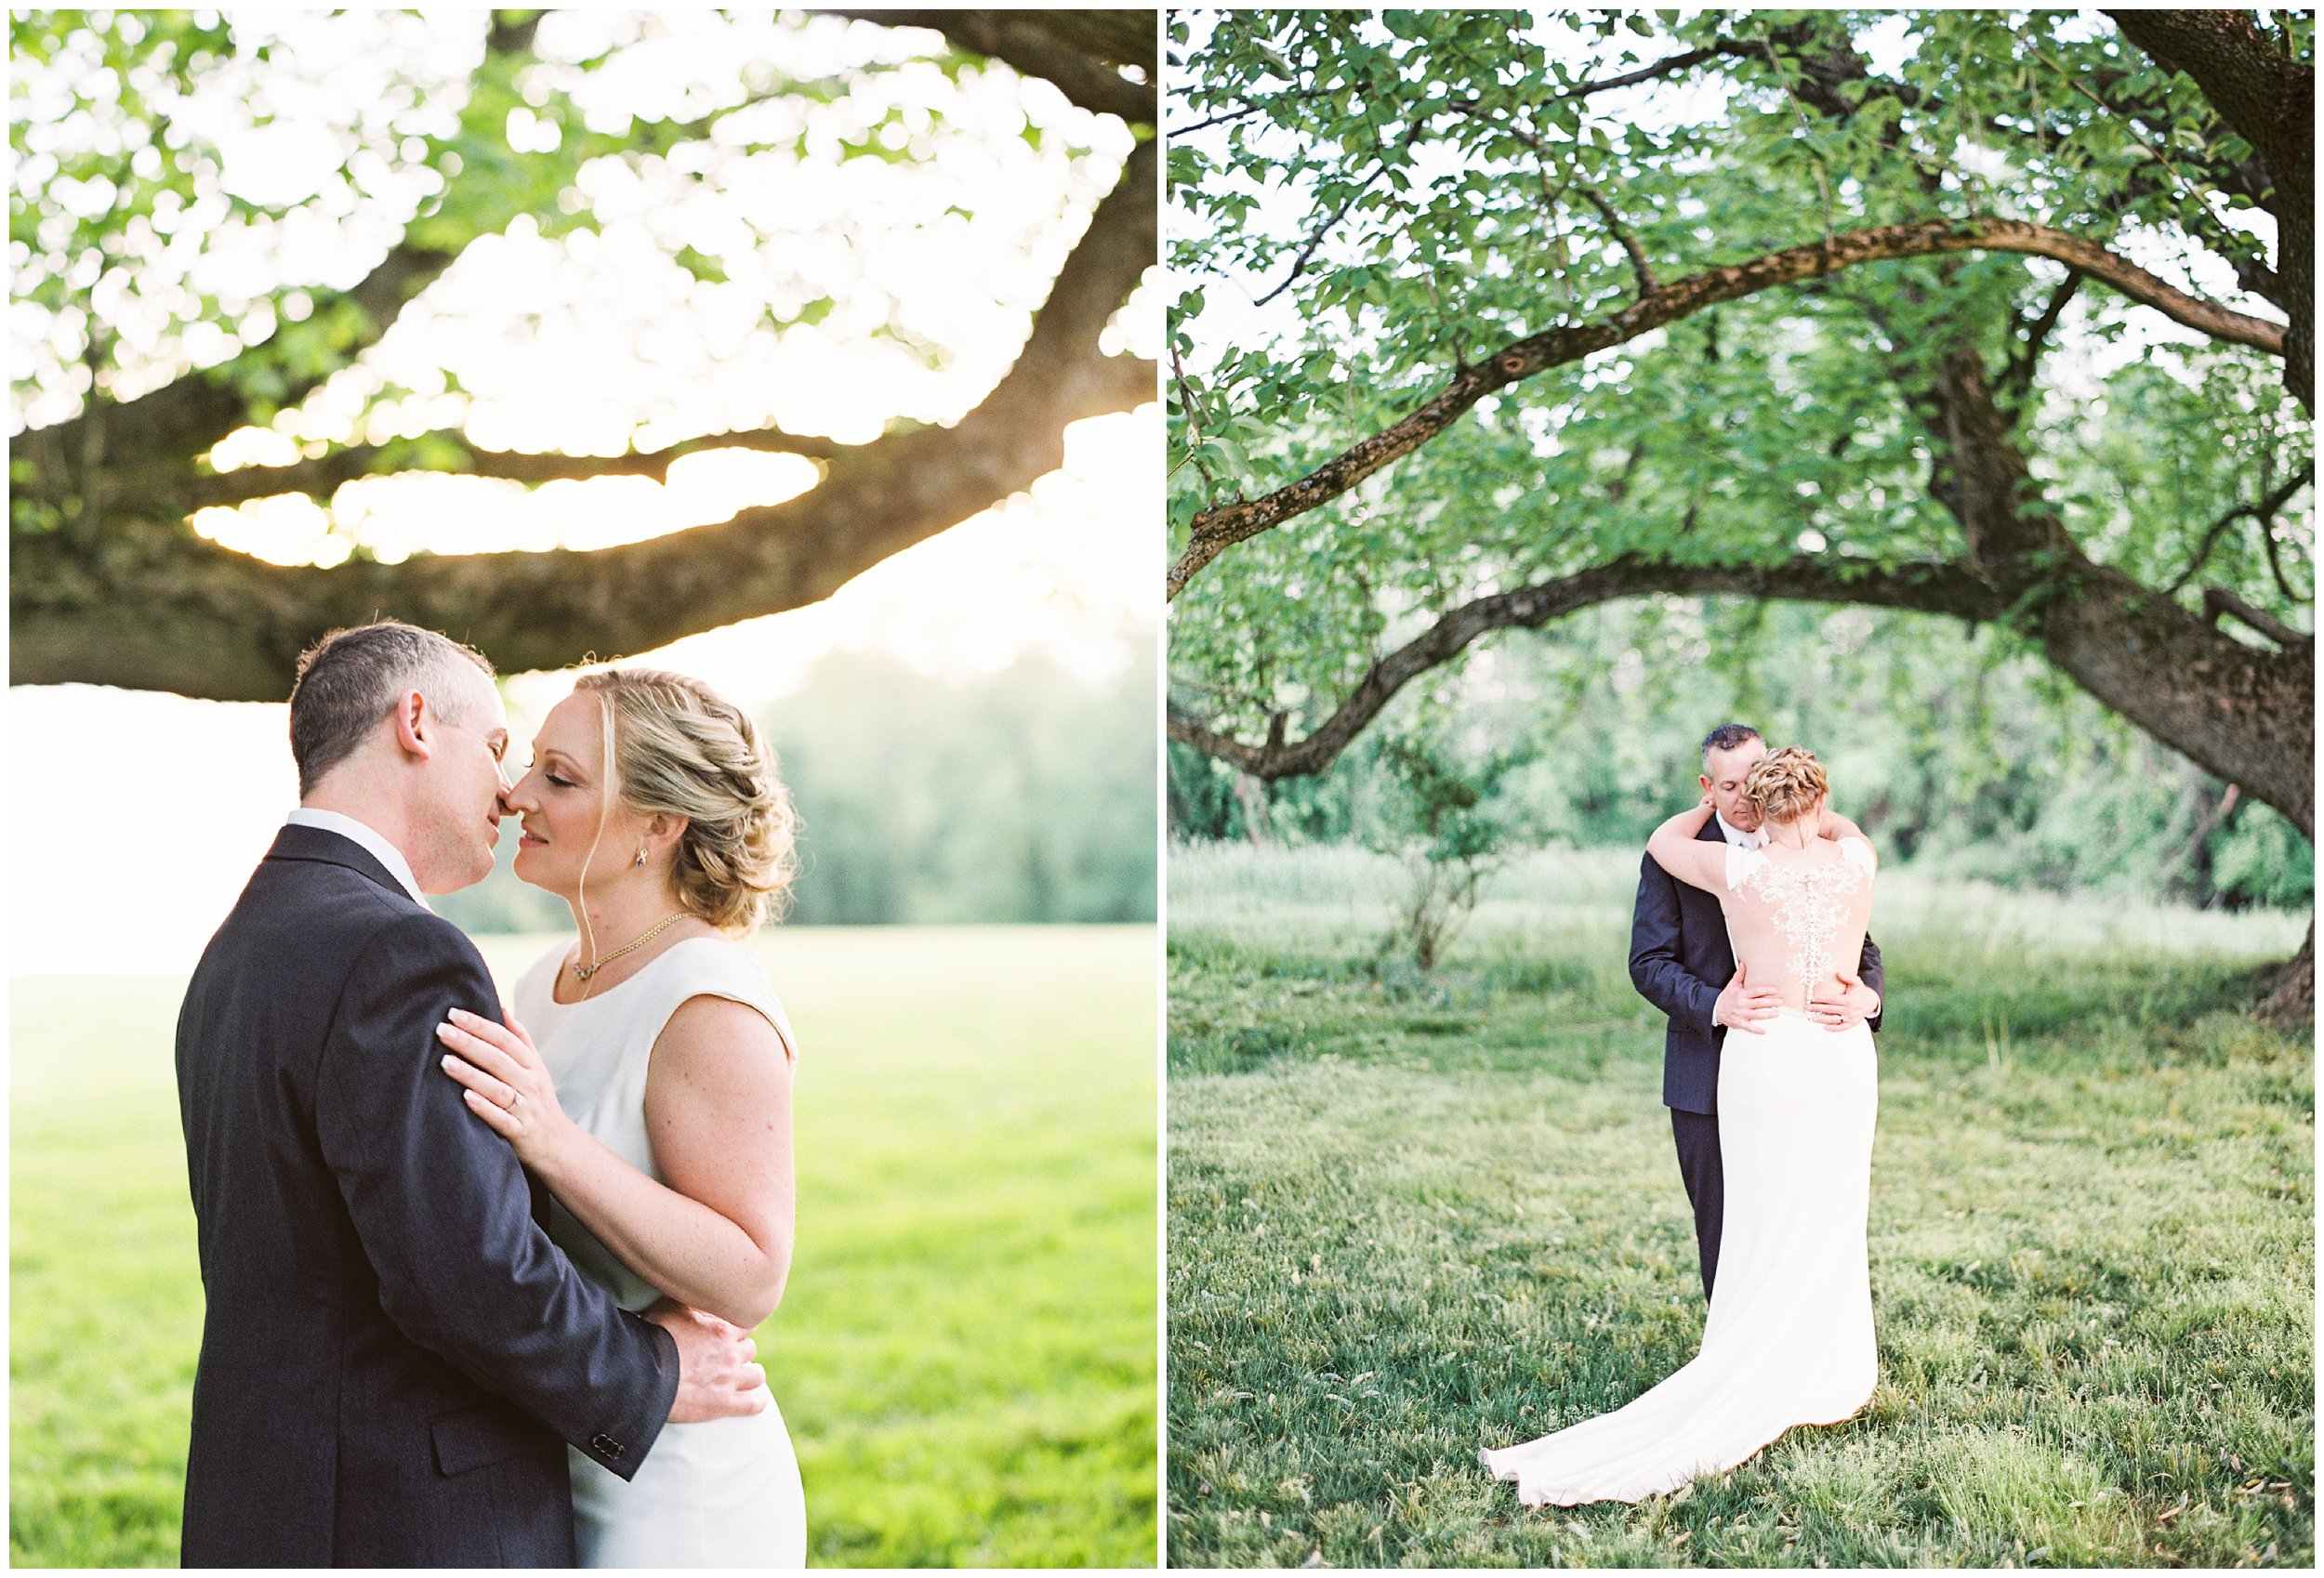 newlyweds under large tree wedding portraits